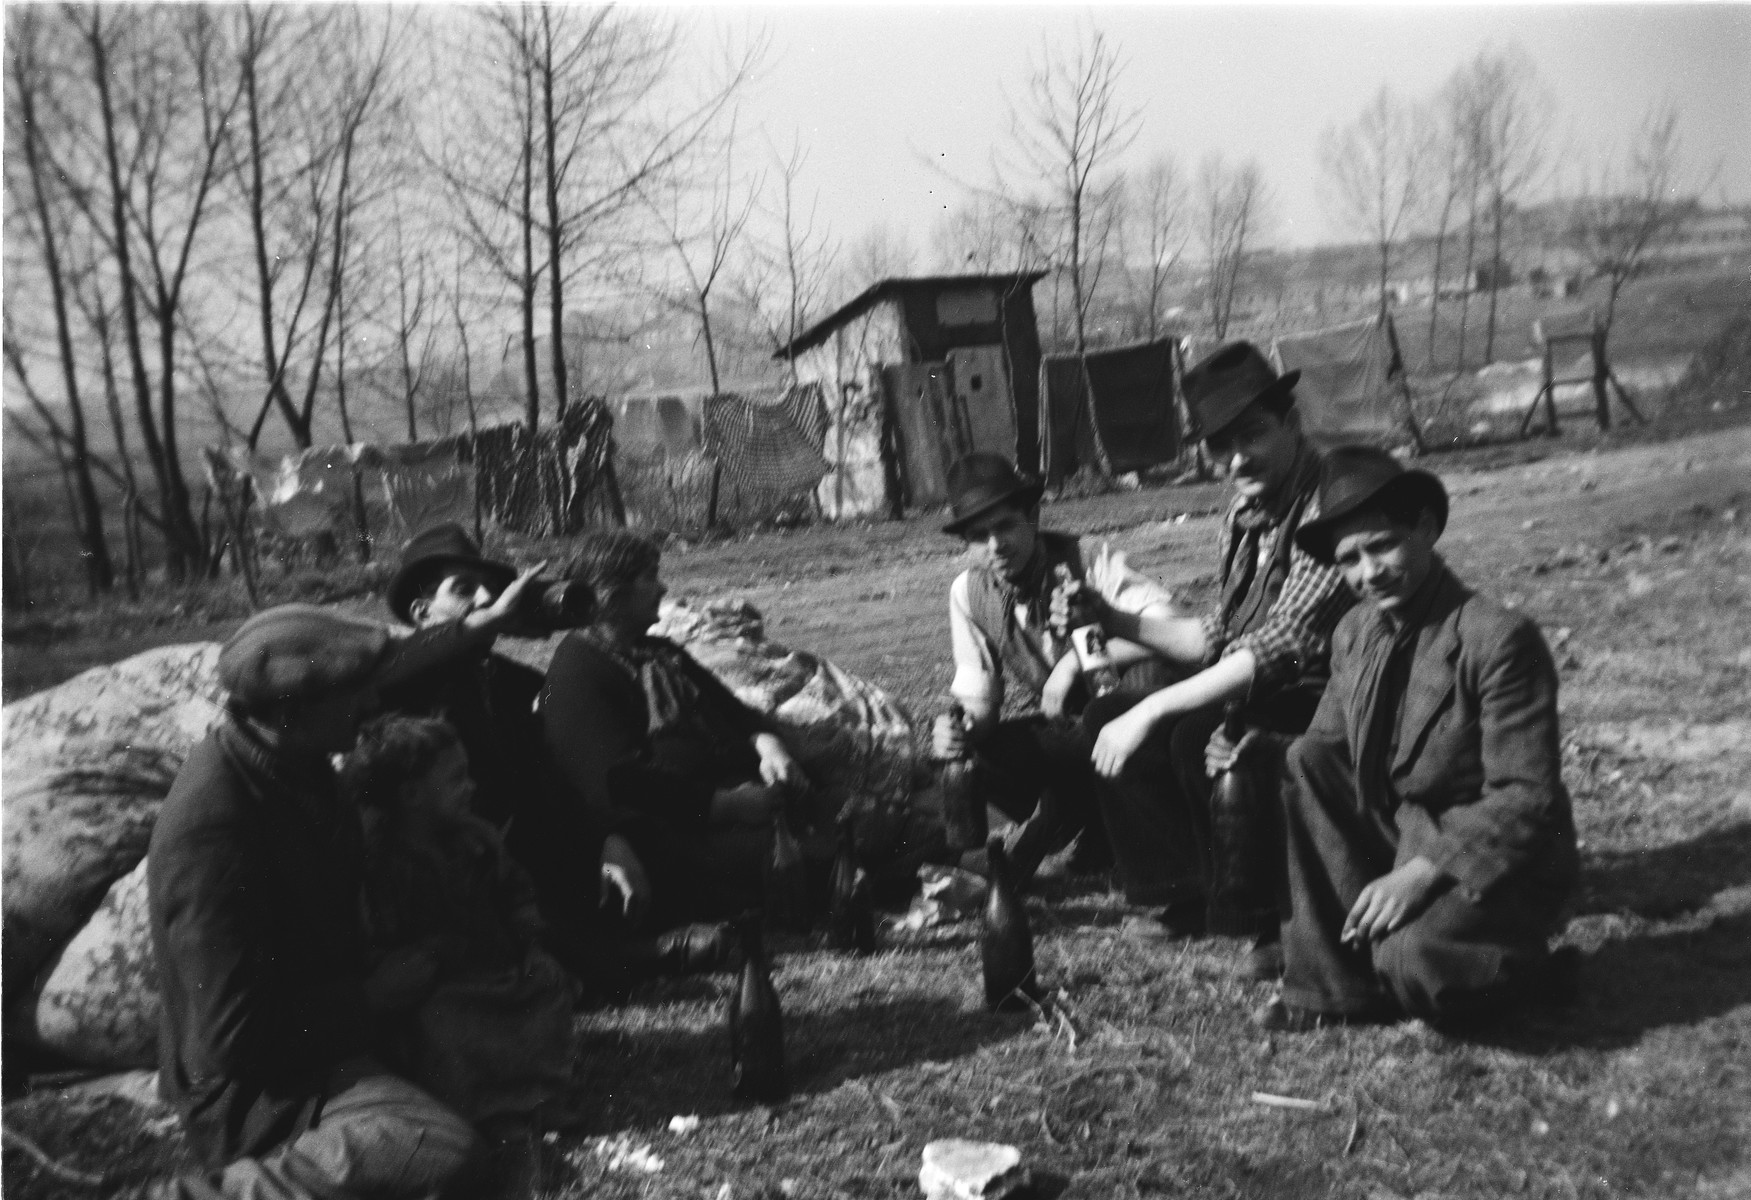 A group of Roma (Gypsy) men sit on the ground in a semi-circle, sharing a drink.